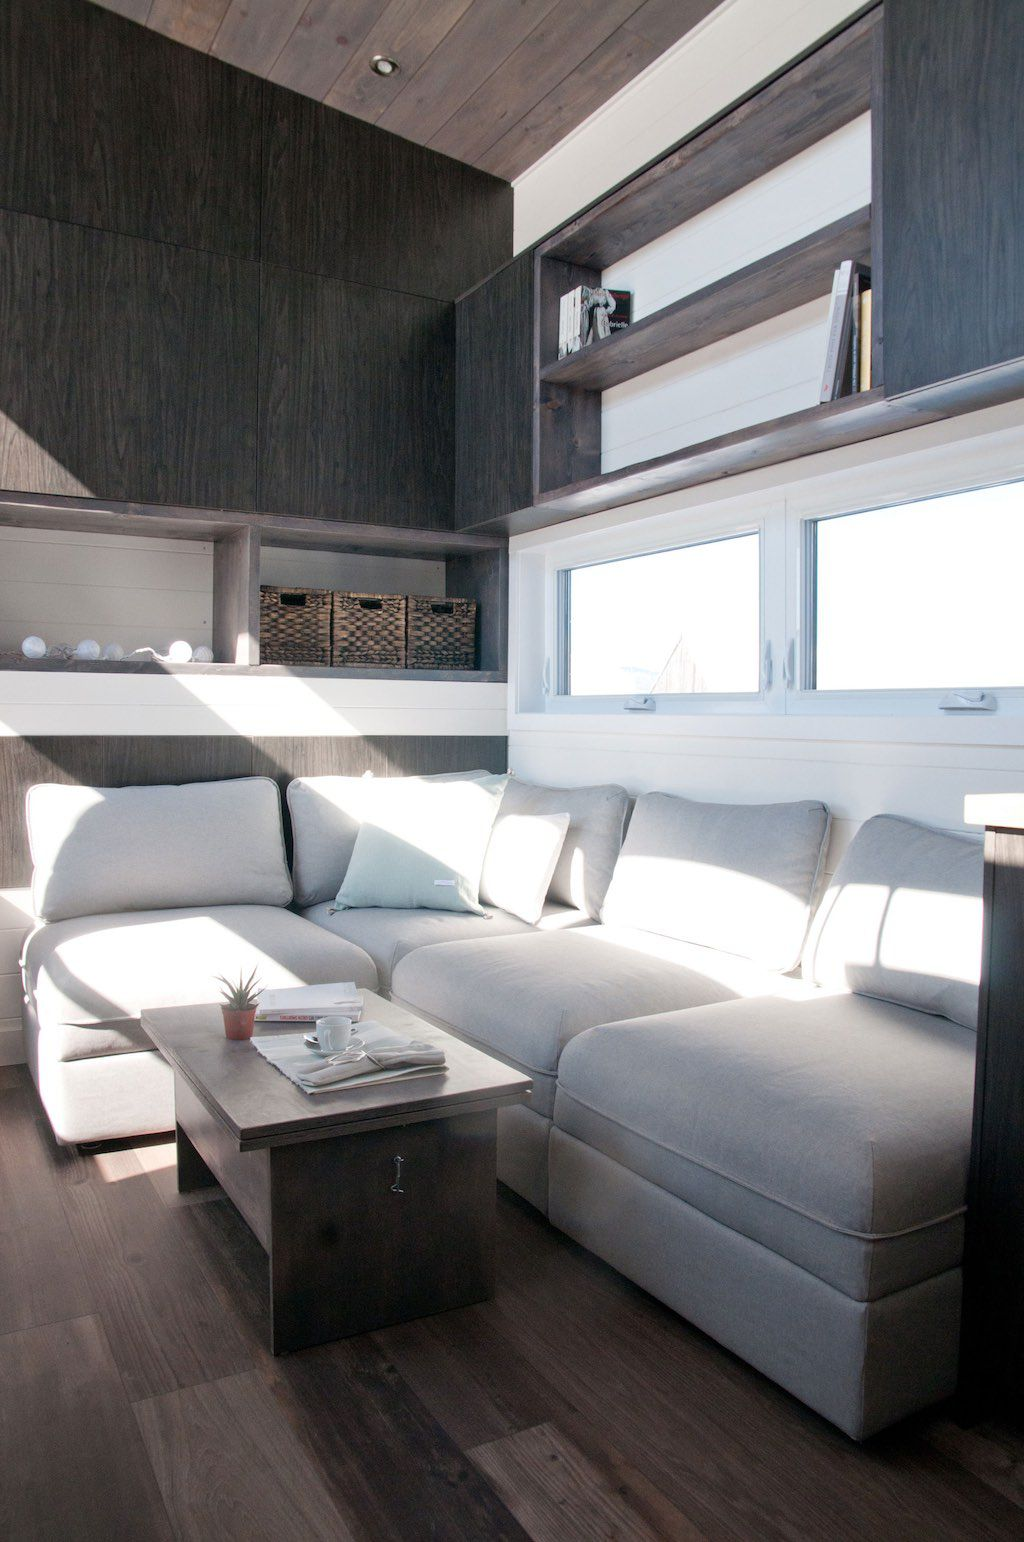 Tiny House With Private Bedroom Offers Minimalist Chic Curbed